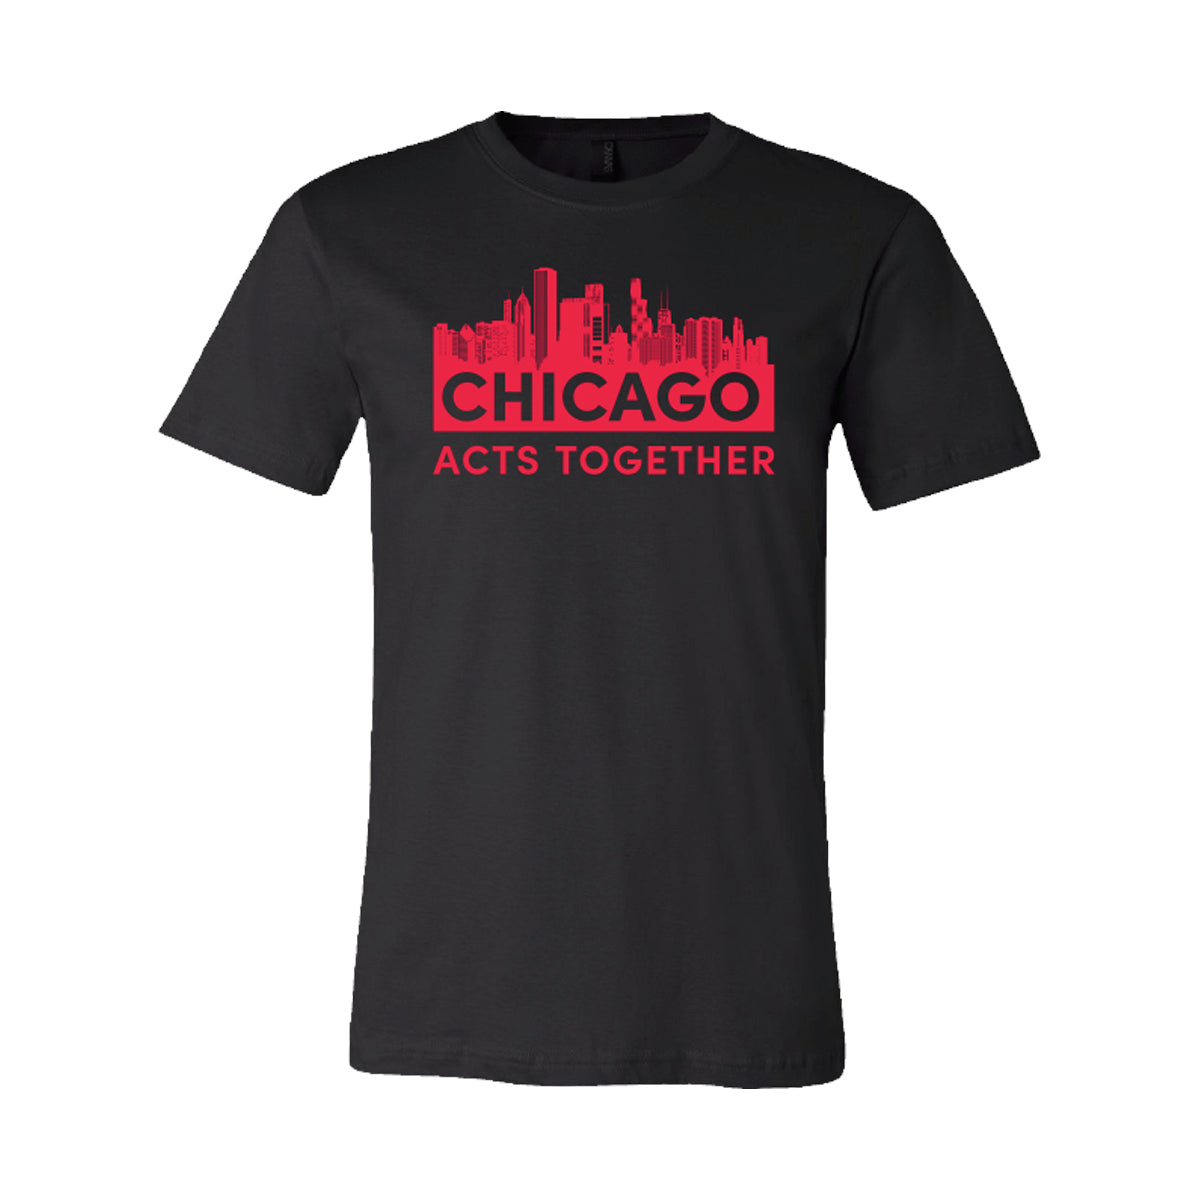 CHICAGO ACTS TOGETHER - SKYLINE RELAXED TEE